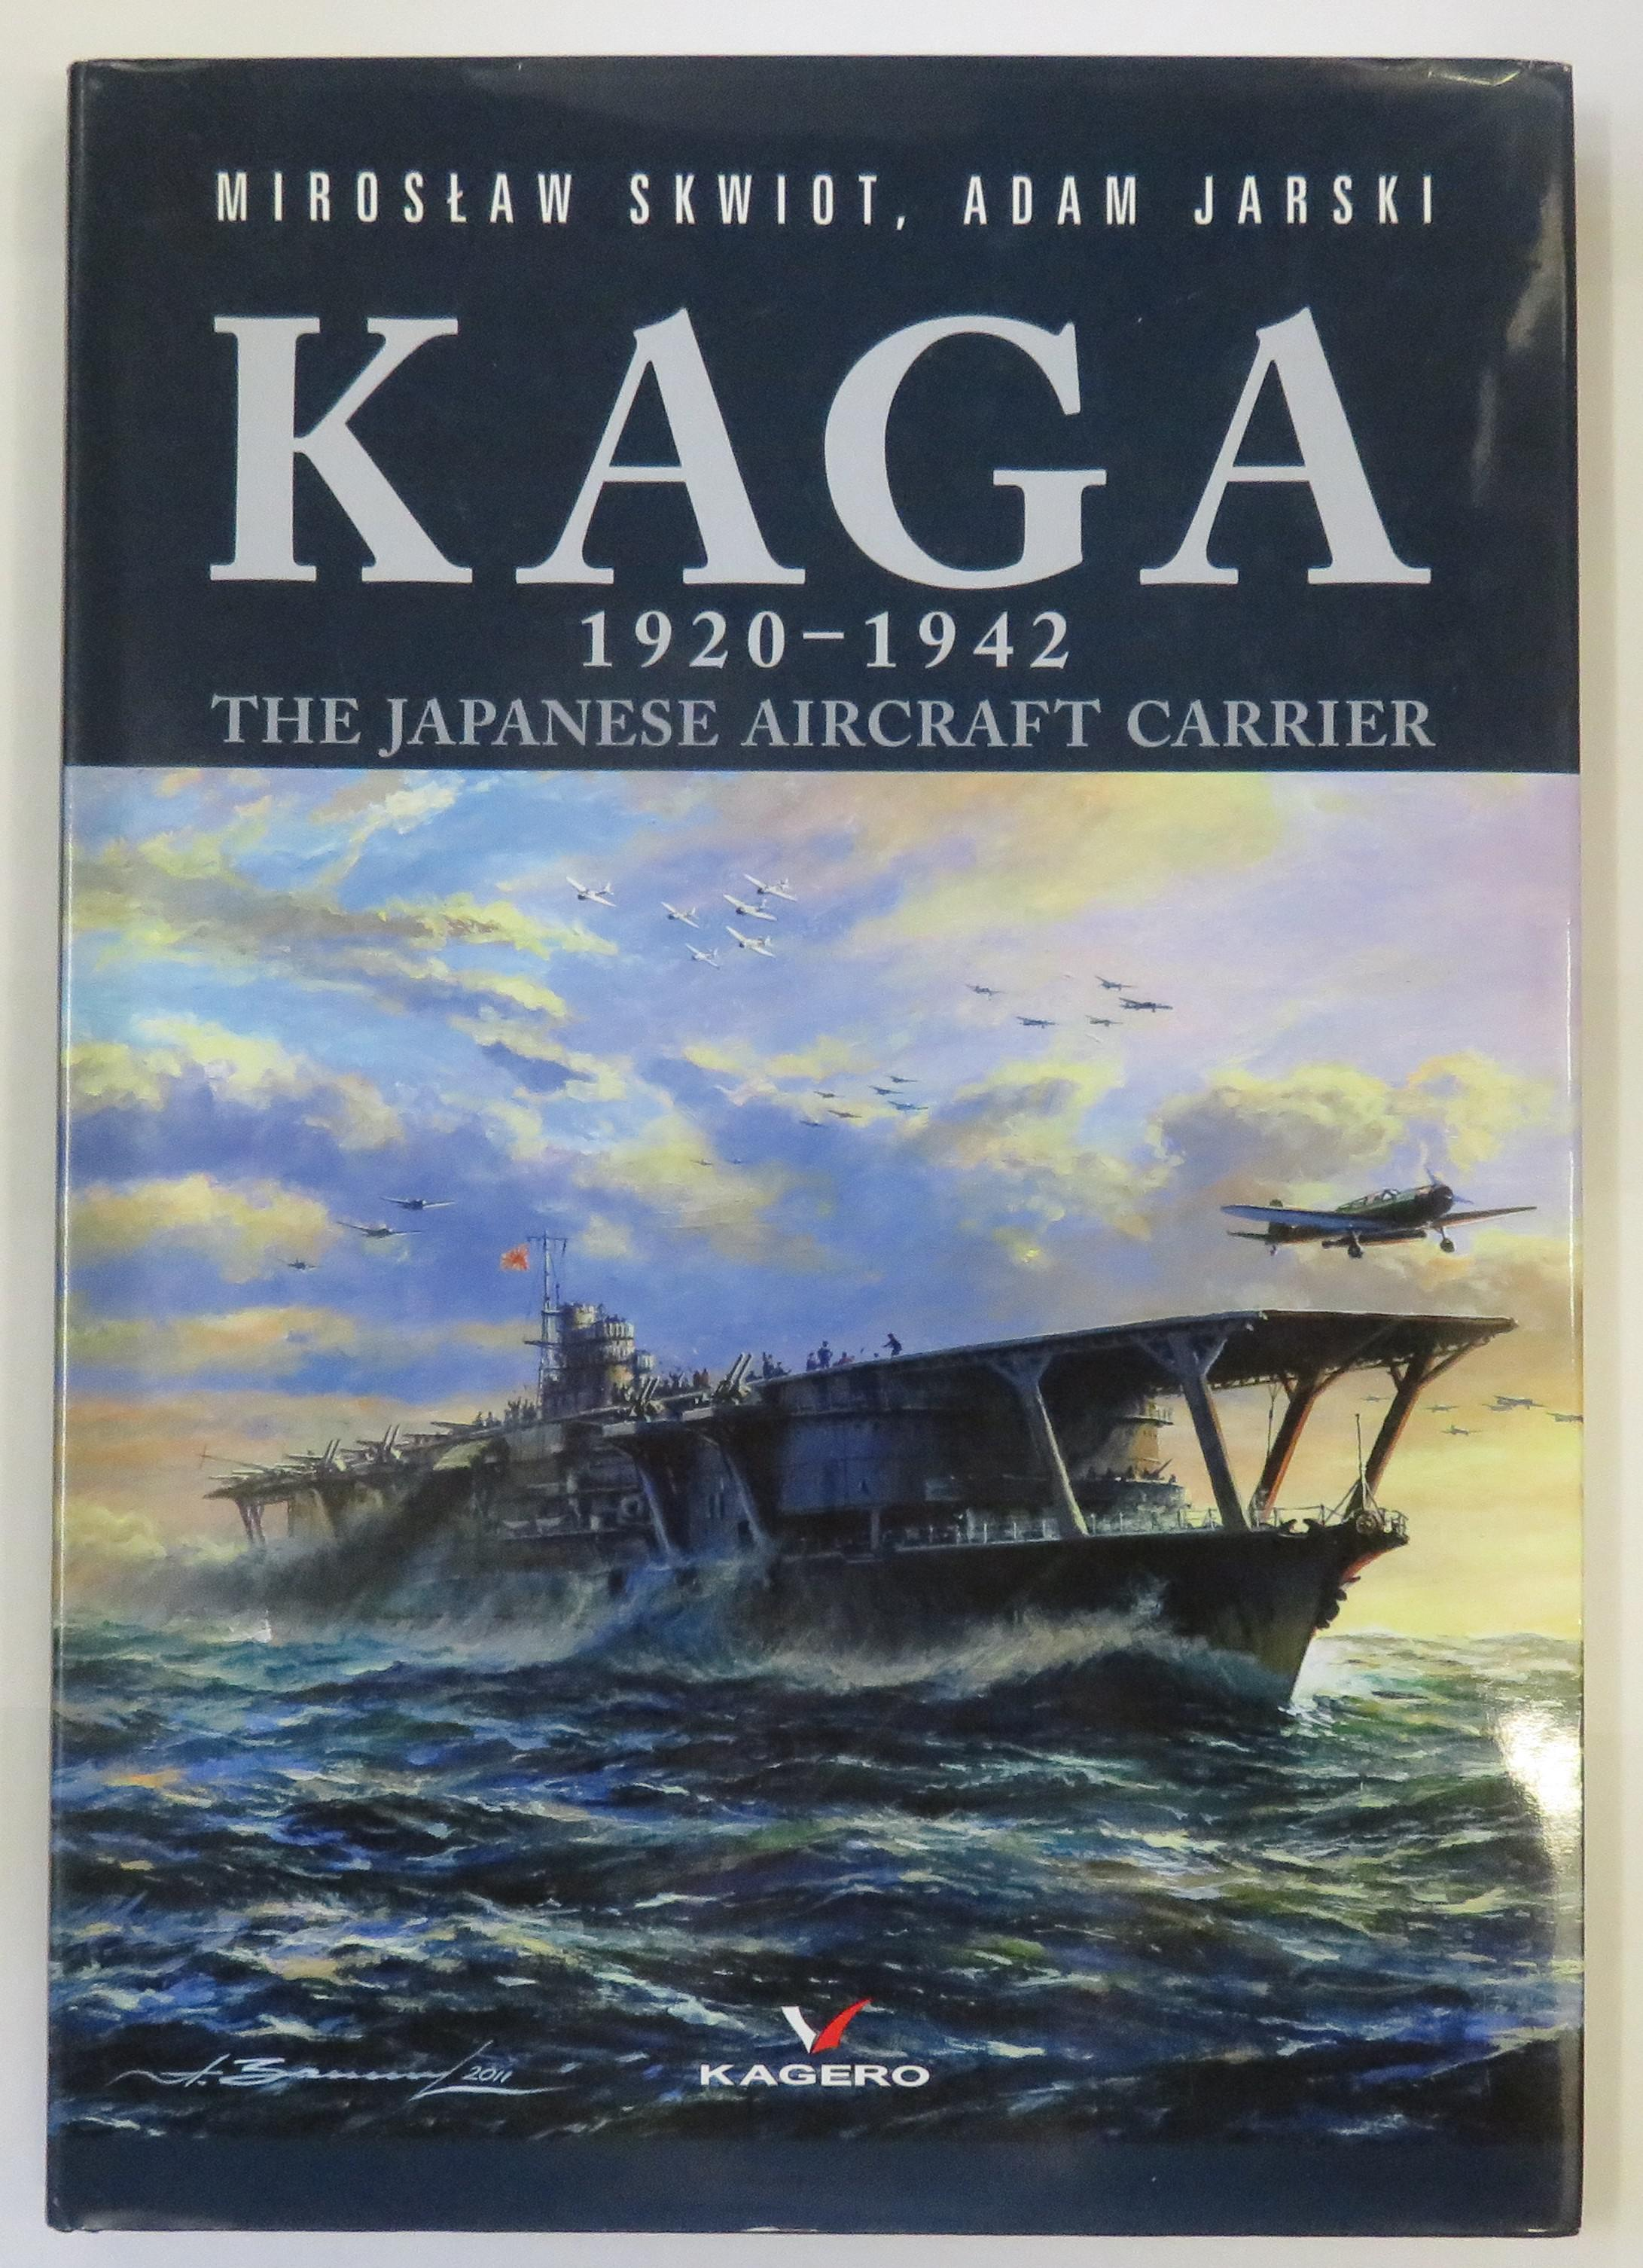 Kaga 1920-1942: The Japanese Aircraft Carrier